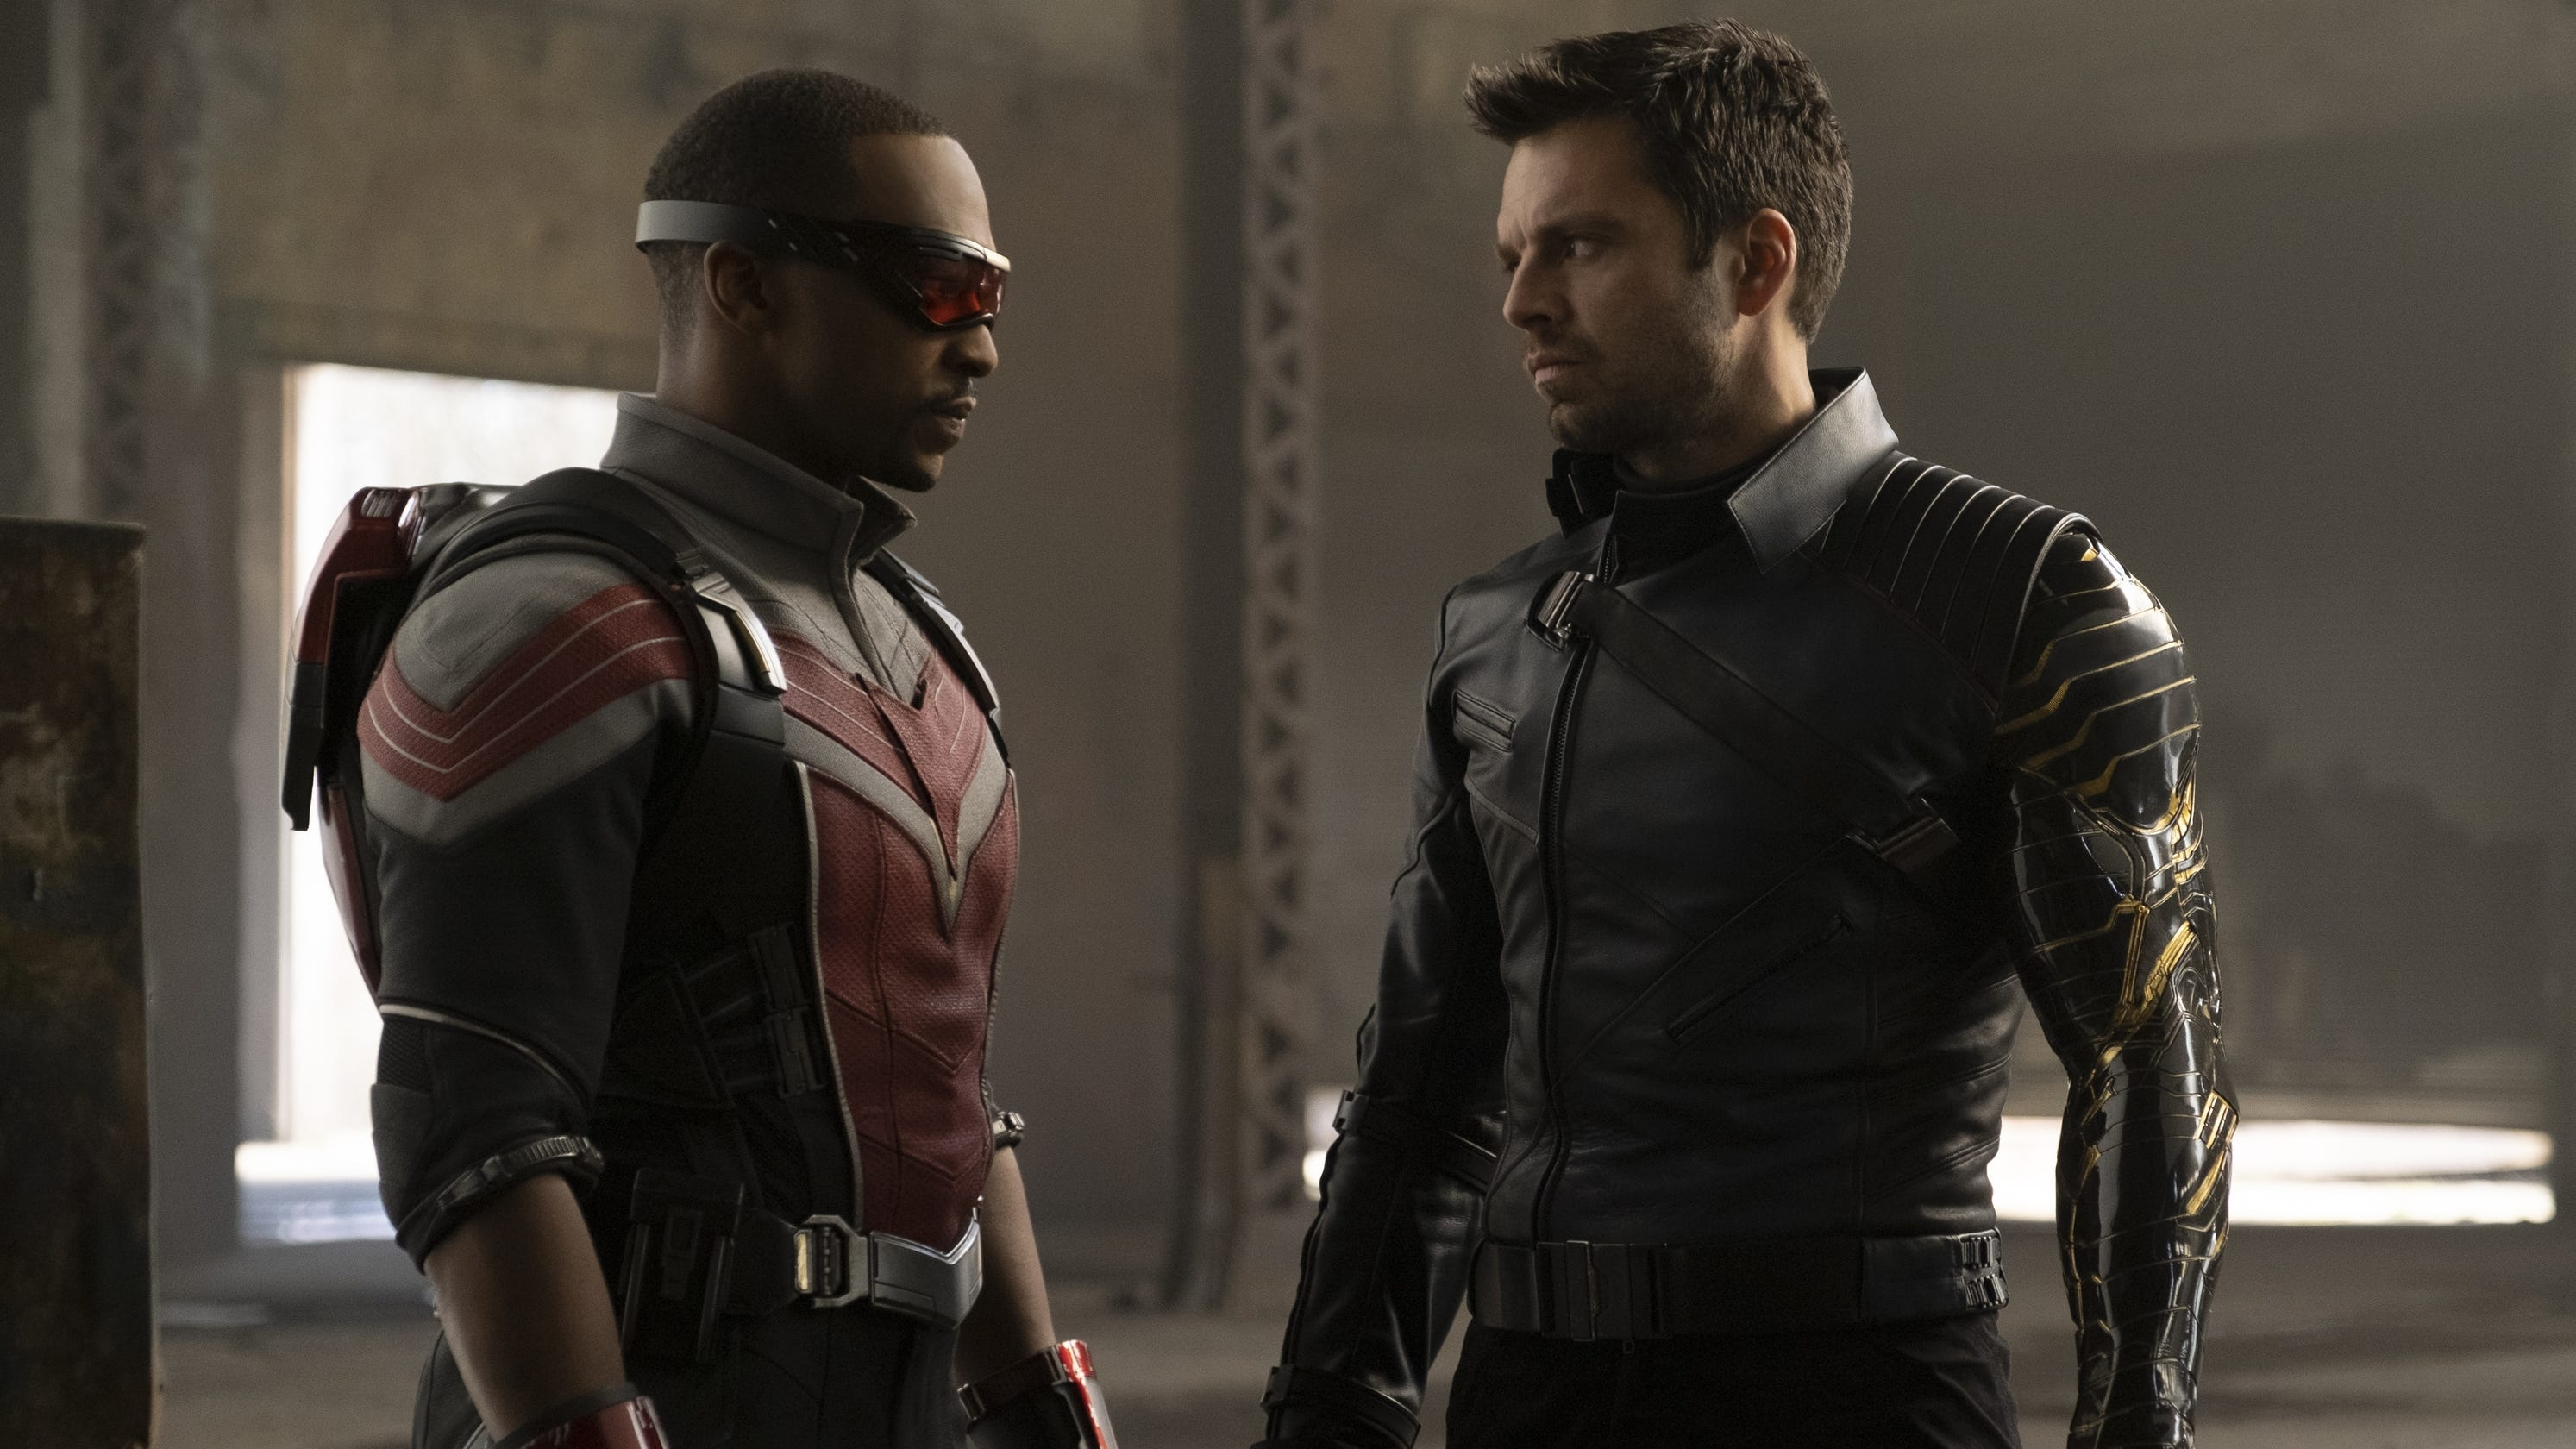 Anthony Mackie gets heat from Marvel fans for shutting down Sam and Bucky romance speculation - USA TODAY